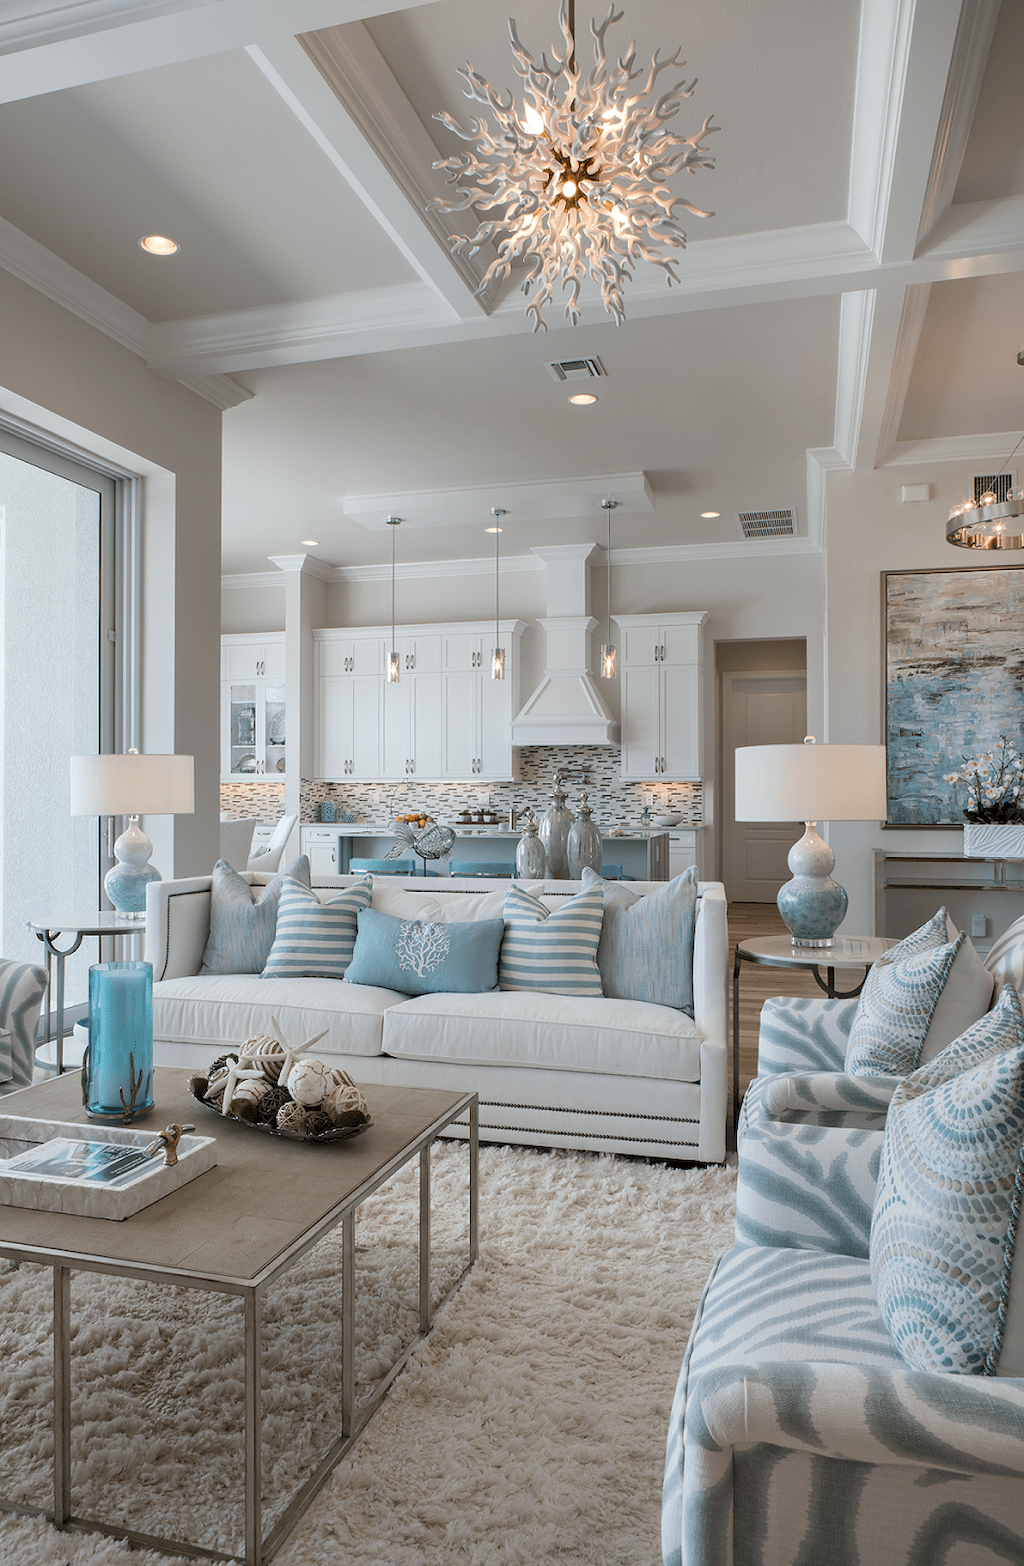 19 Cozy Coastal Living Room Decorating Ideas Setyouroom Co